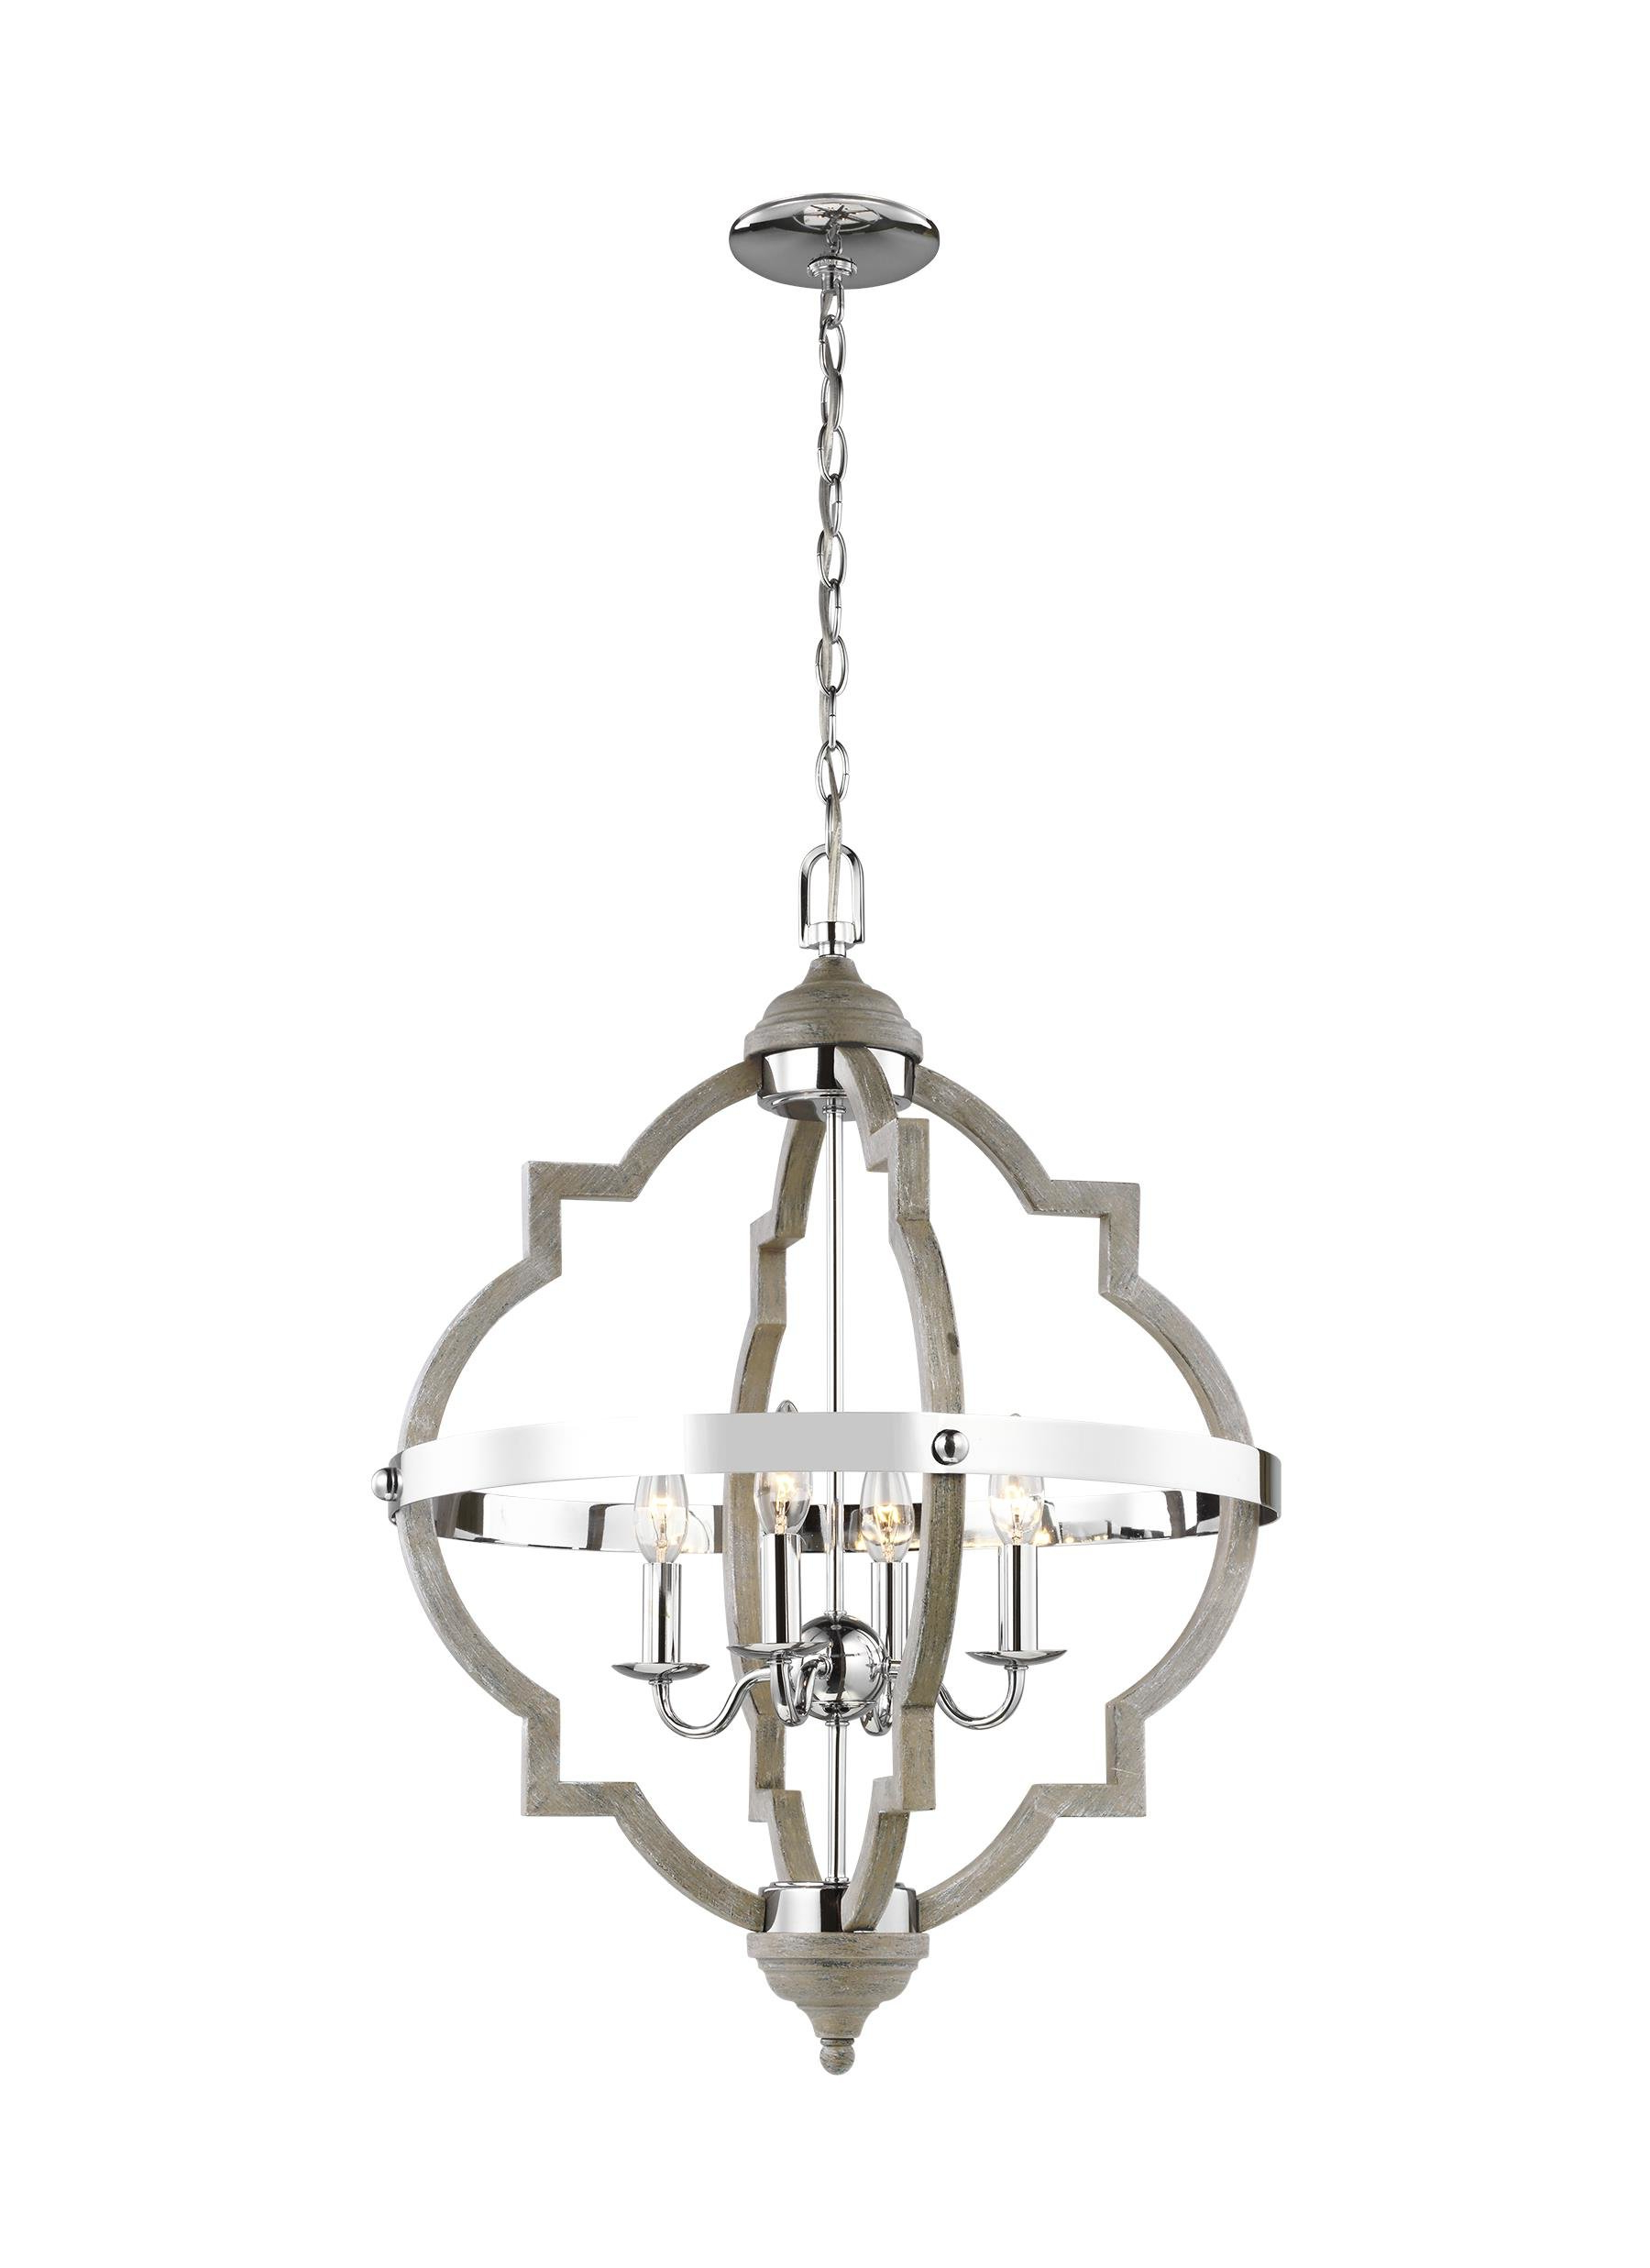 2019 Bennington 4 Light Candle Style Chandeliers With Bennington 4 Light Candle Style Chandelier (Gallery 3 of 20)